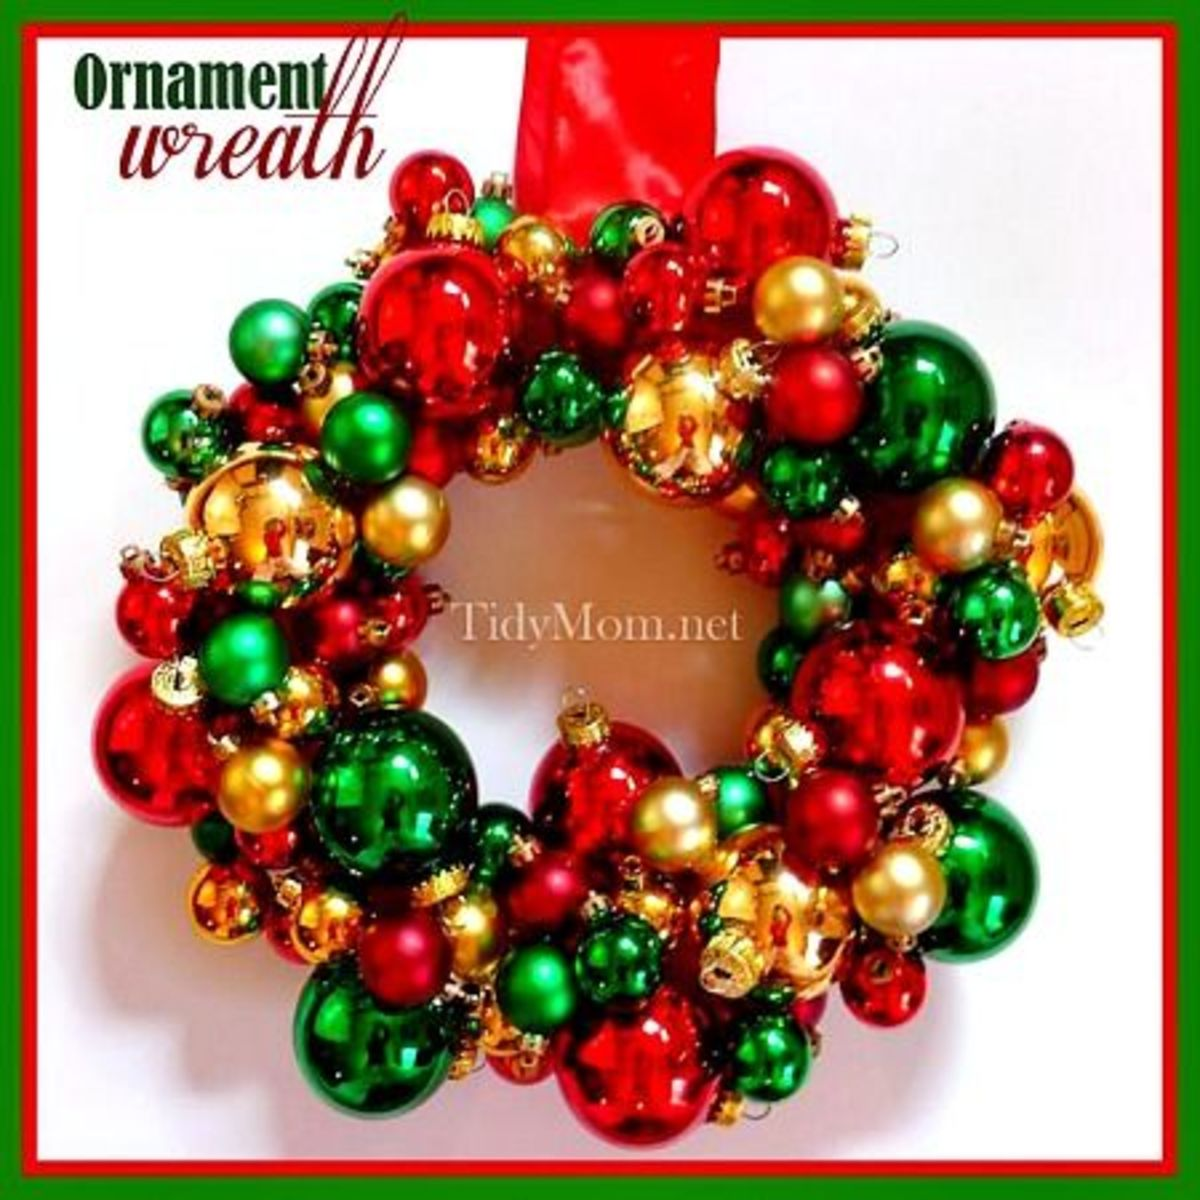 Image #7 - Retro Glass Christmas Ornament Wreath